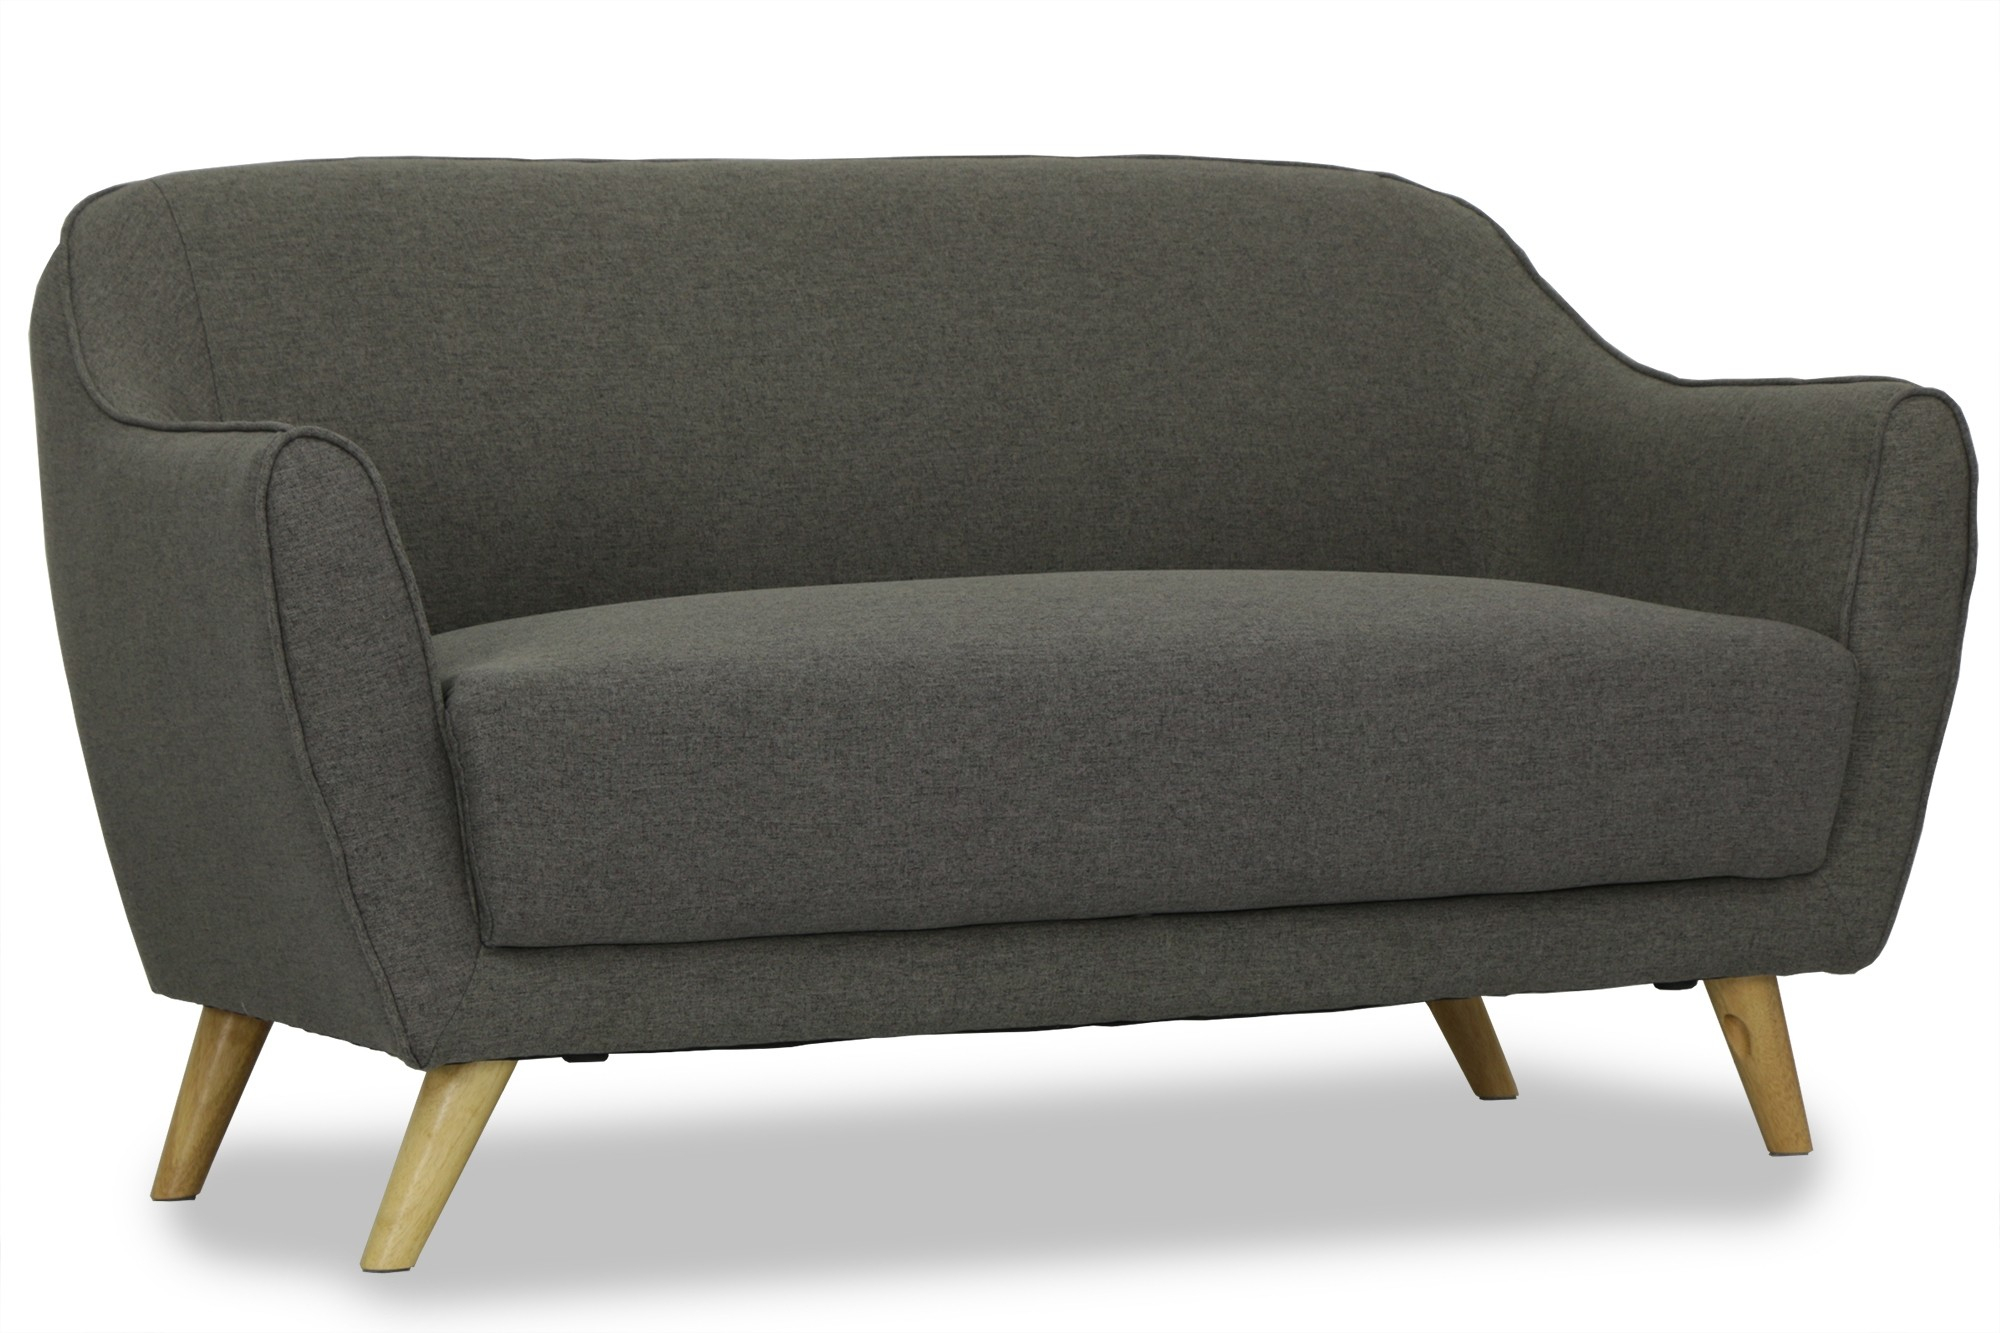 Kokoro Ii 2 Seater Sofa | Furniture & Home Décor | Fortytwo With Gina Blue Leather Sofa Chairs (Image 16 of 25)